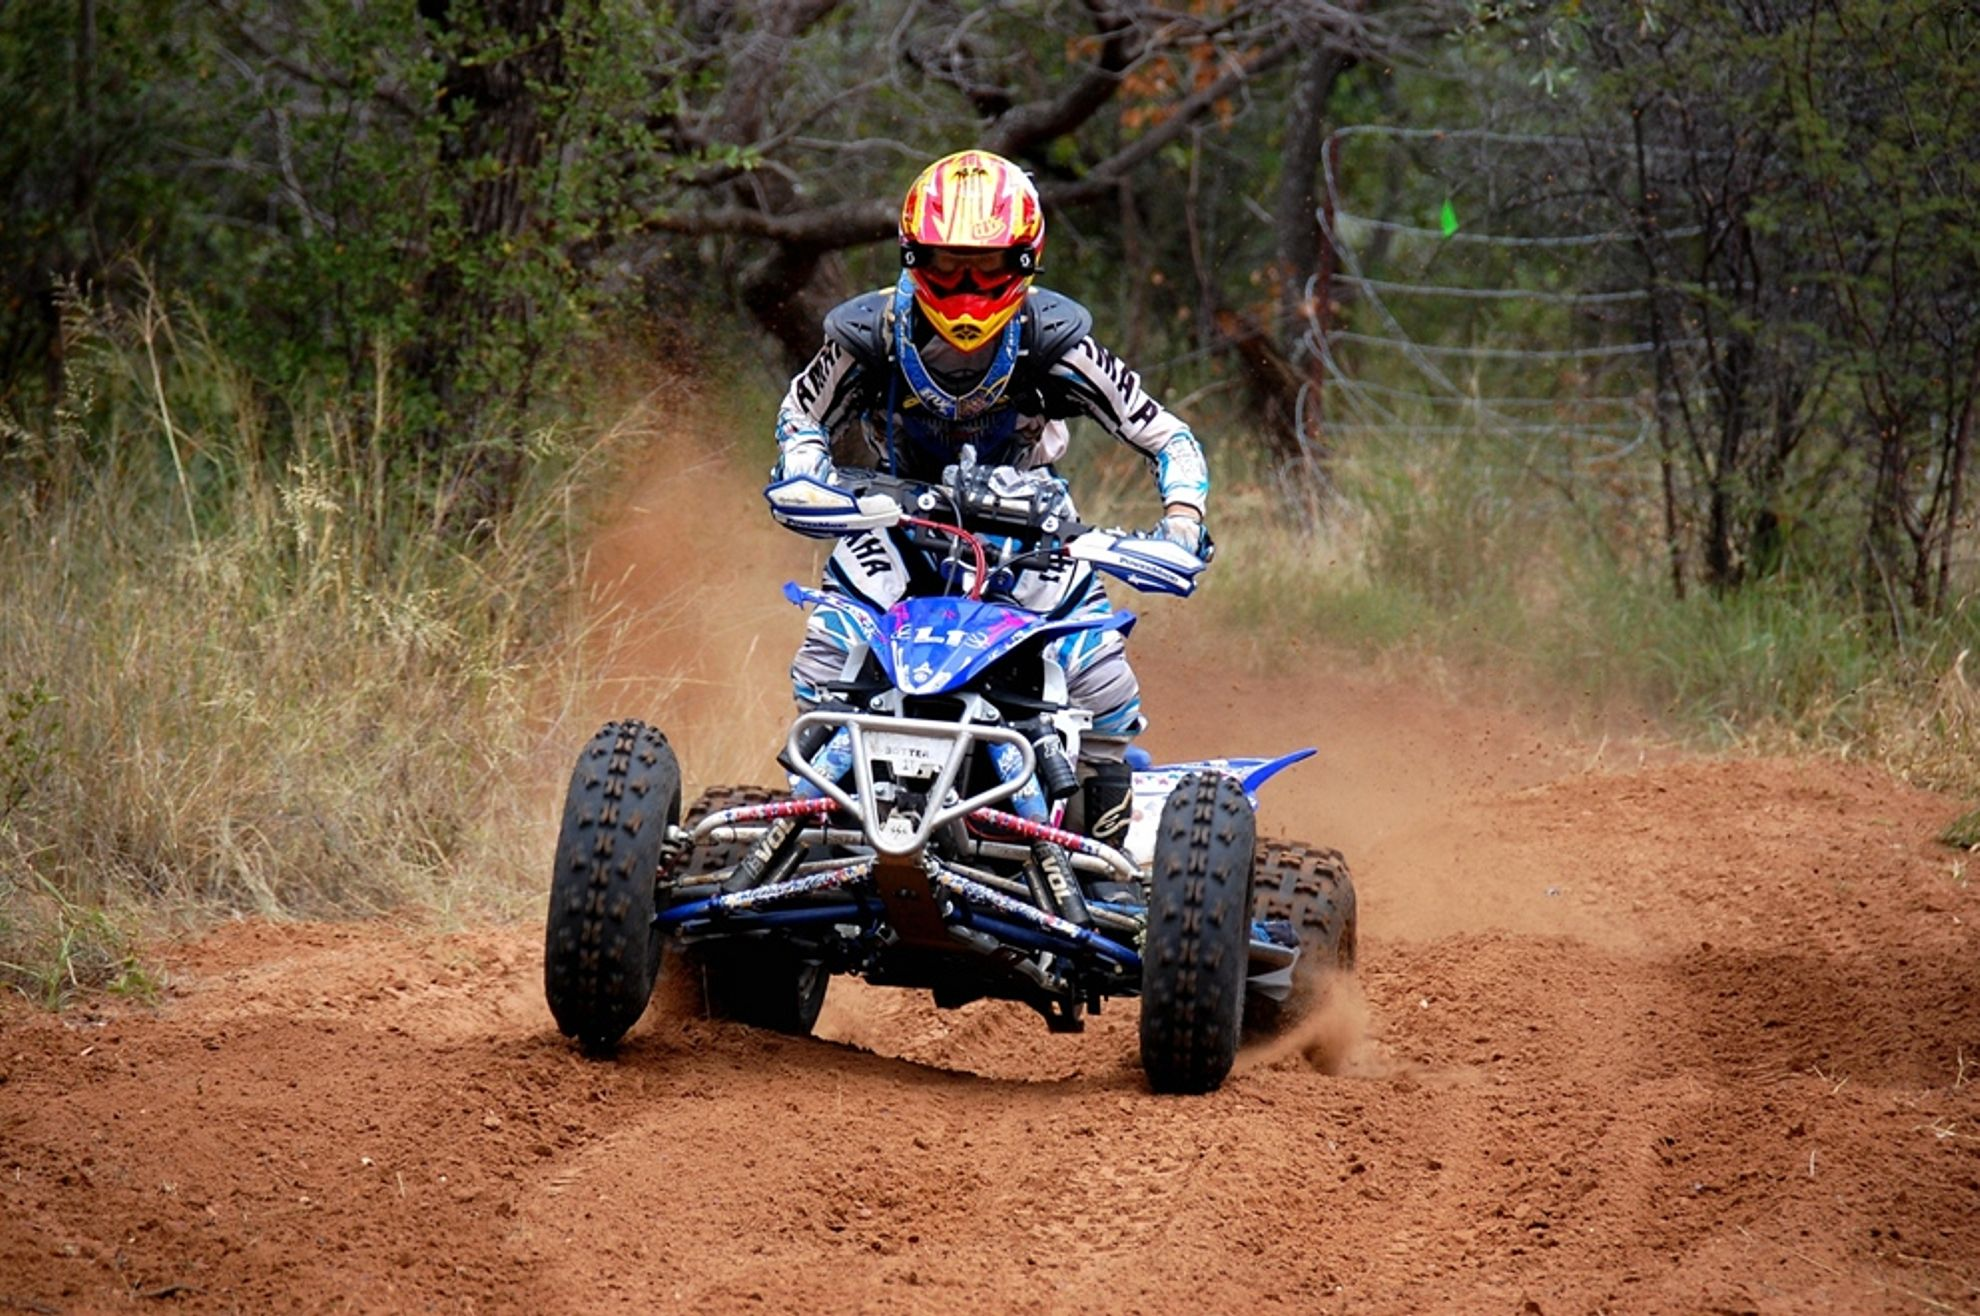 Motorcycle-Racing-South-Africa